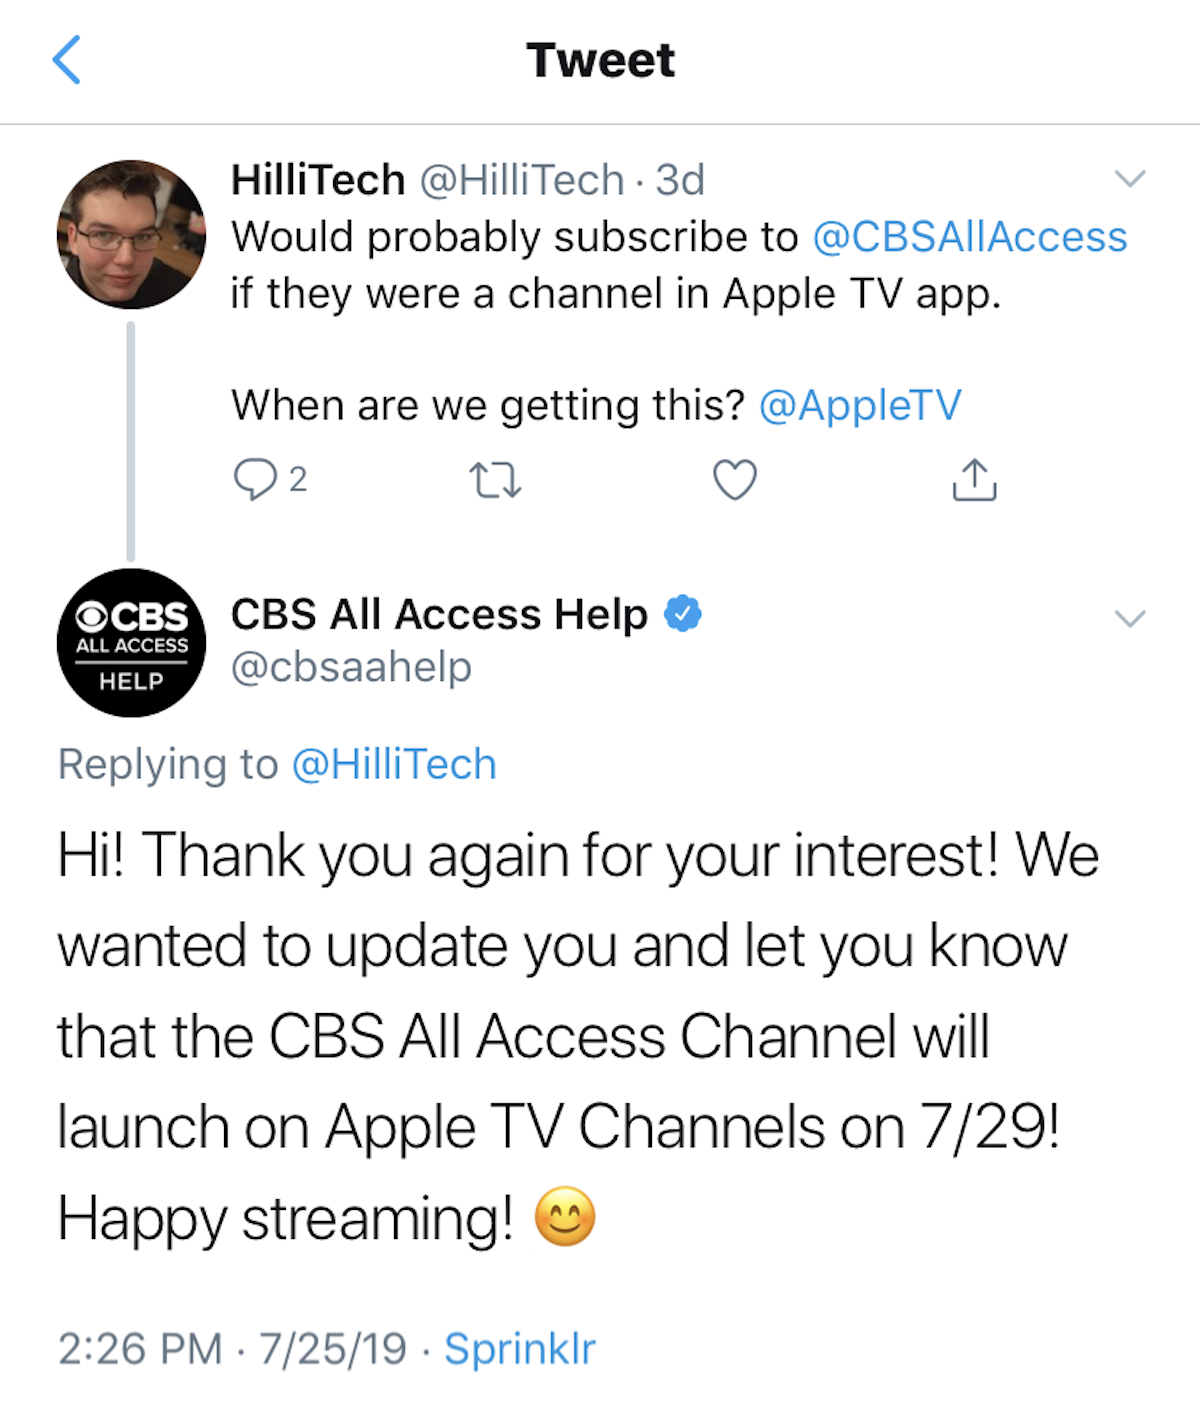 CBS All Access Help on Twitter